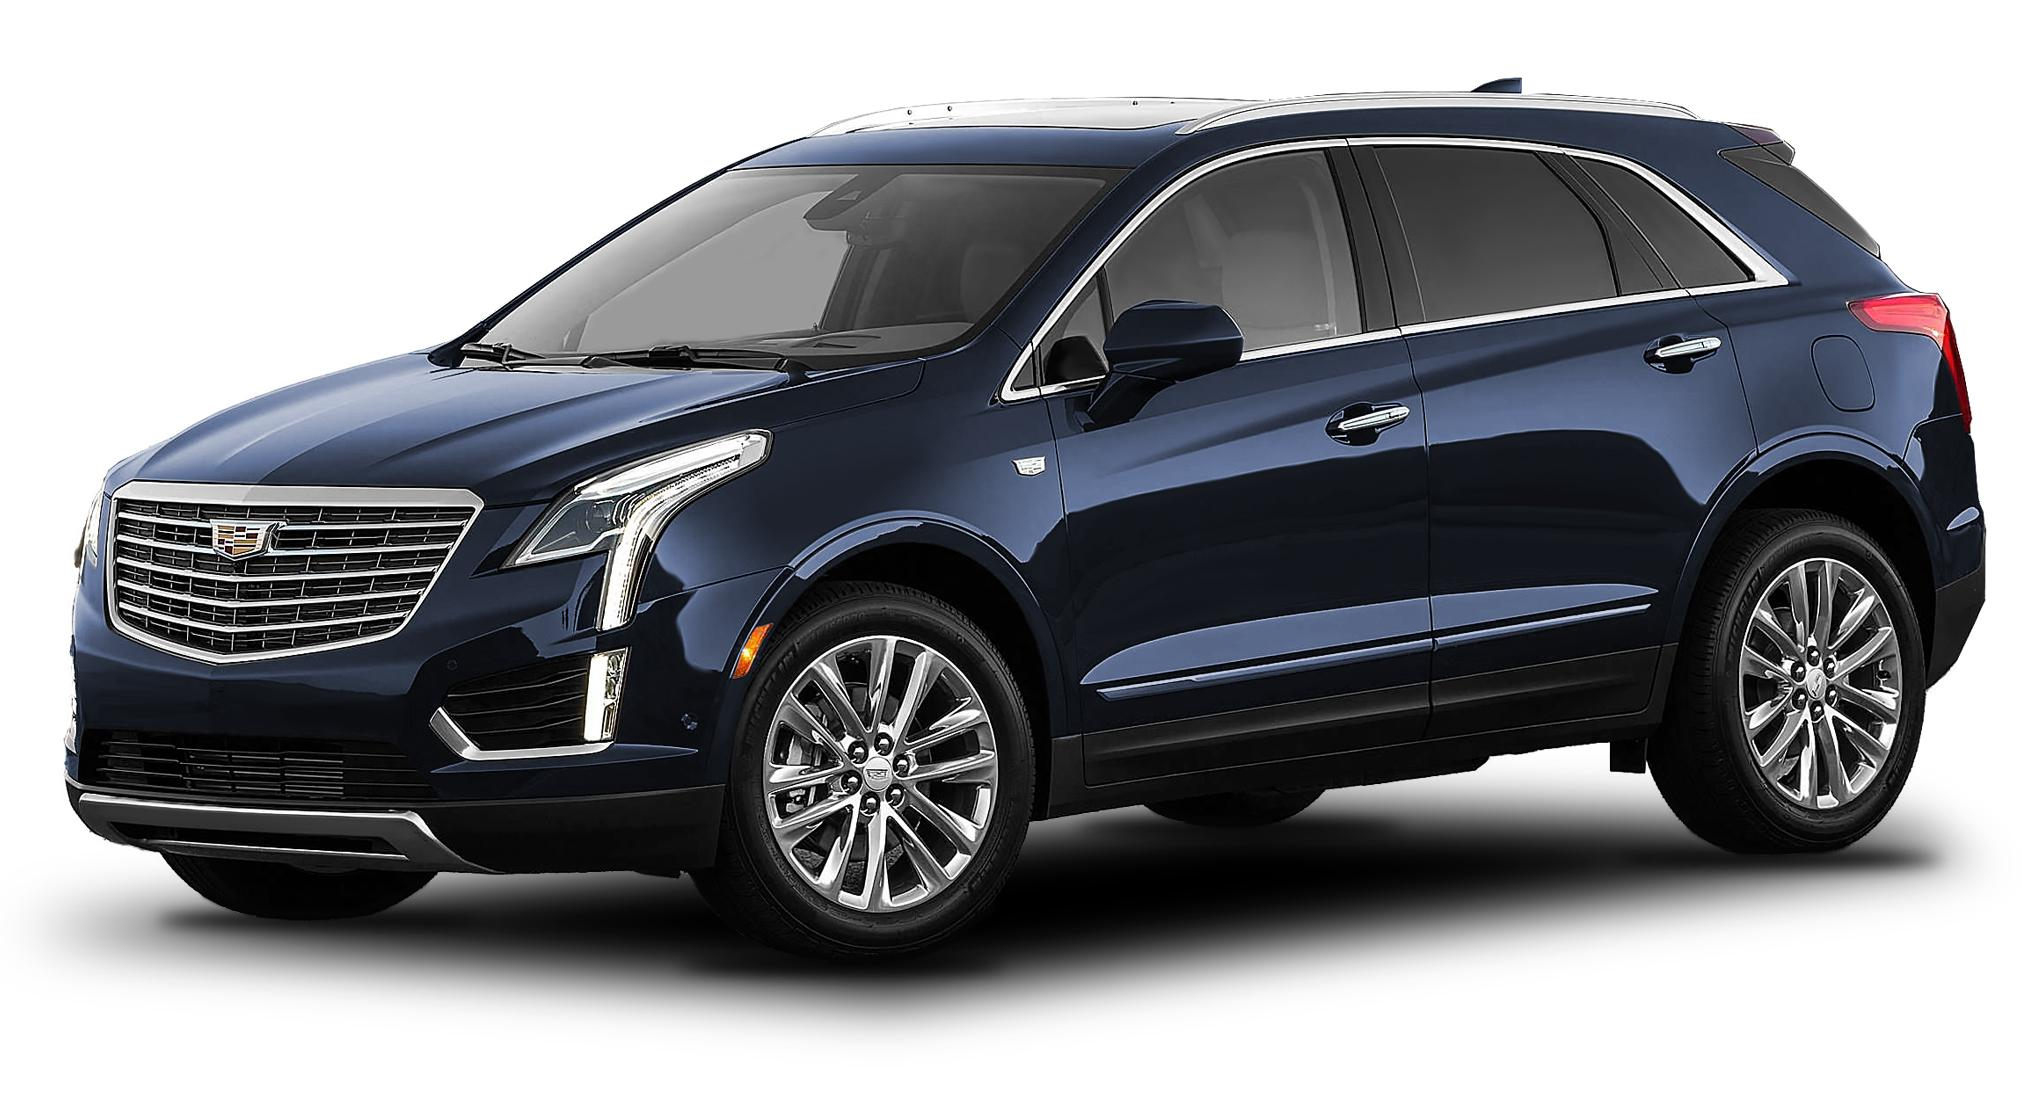 Cadillac XT5 Dark Adriatic Blue Metallic